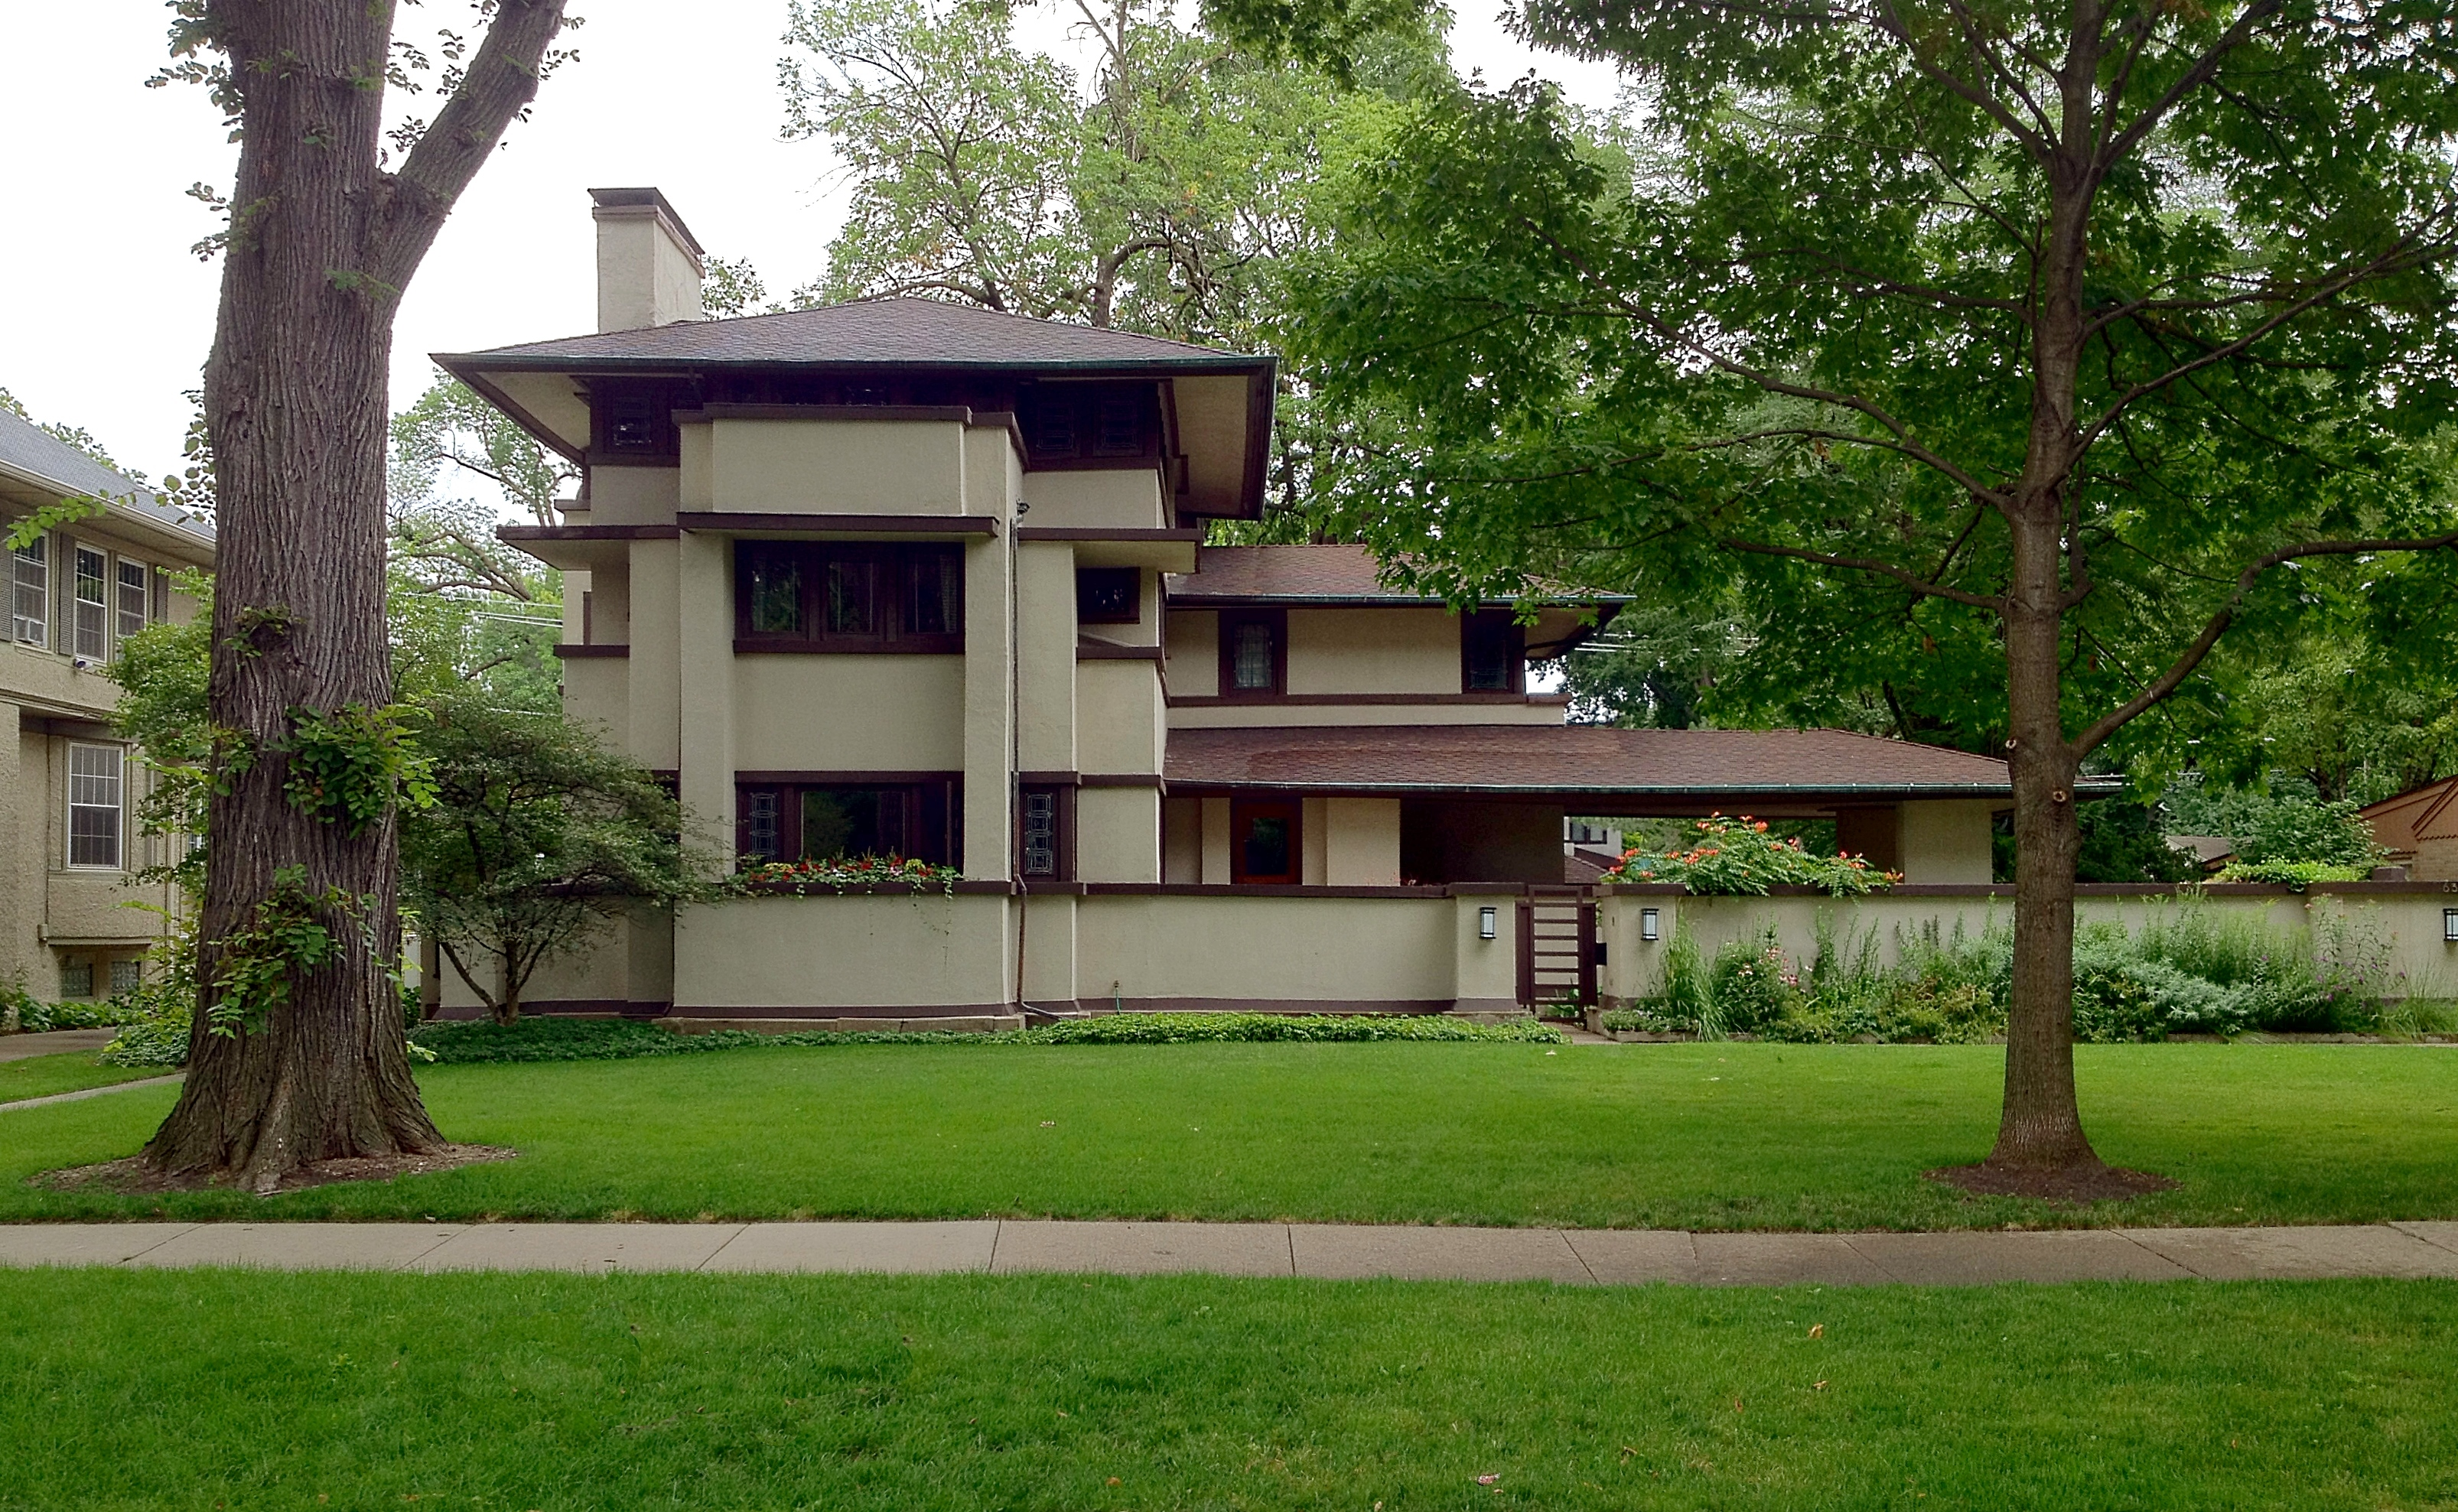 Frank Lloyd Wright Style House Frank Lloyd Wright's Oak Park Illinois Designs The Prairie